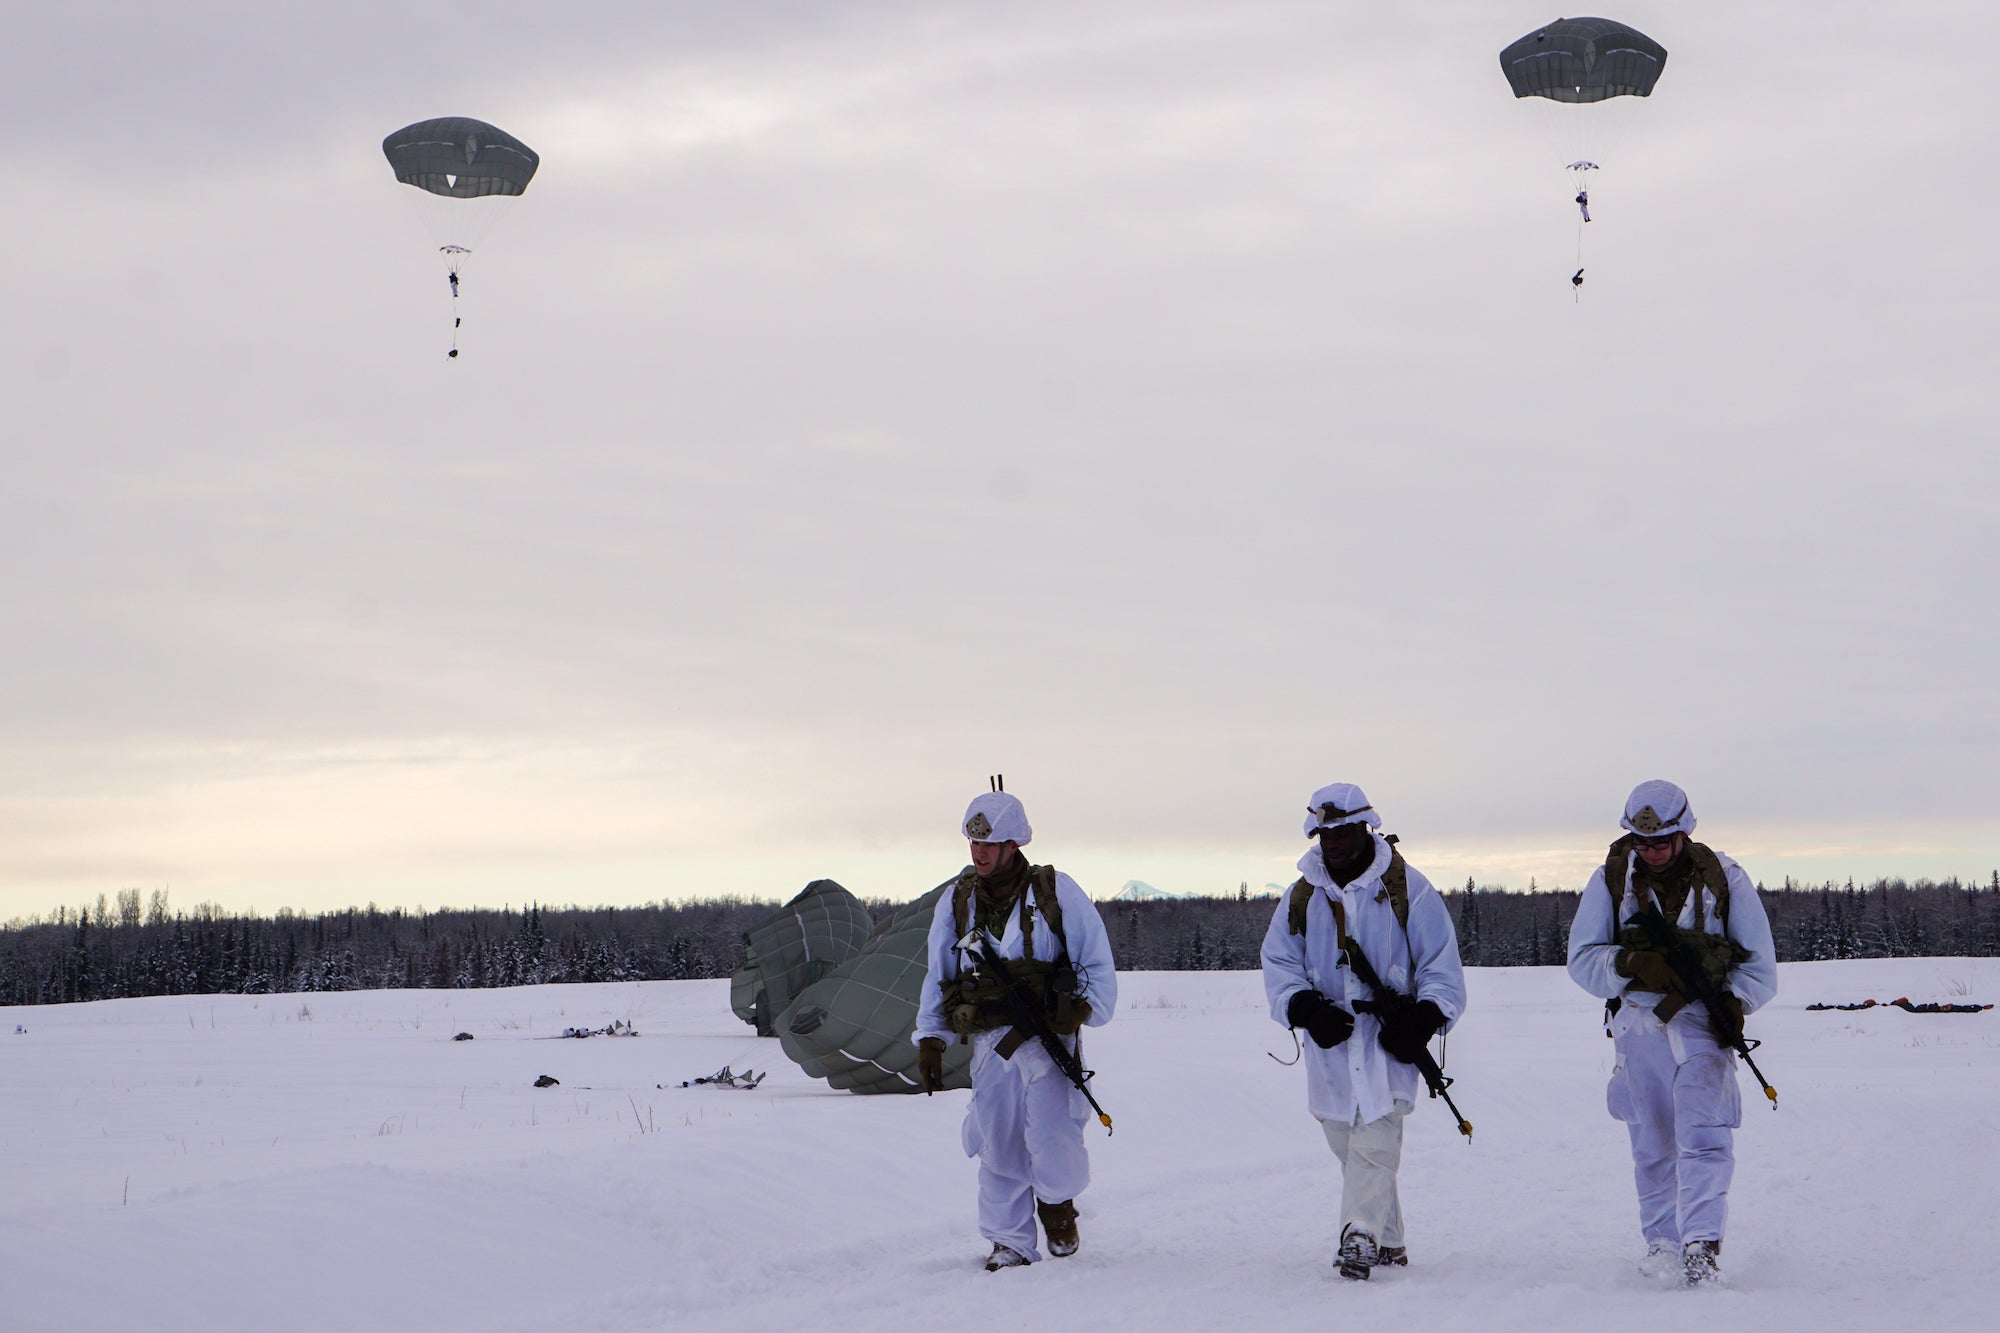 Three paratroopers walk across a snowy field.